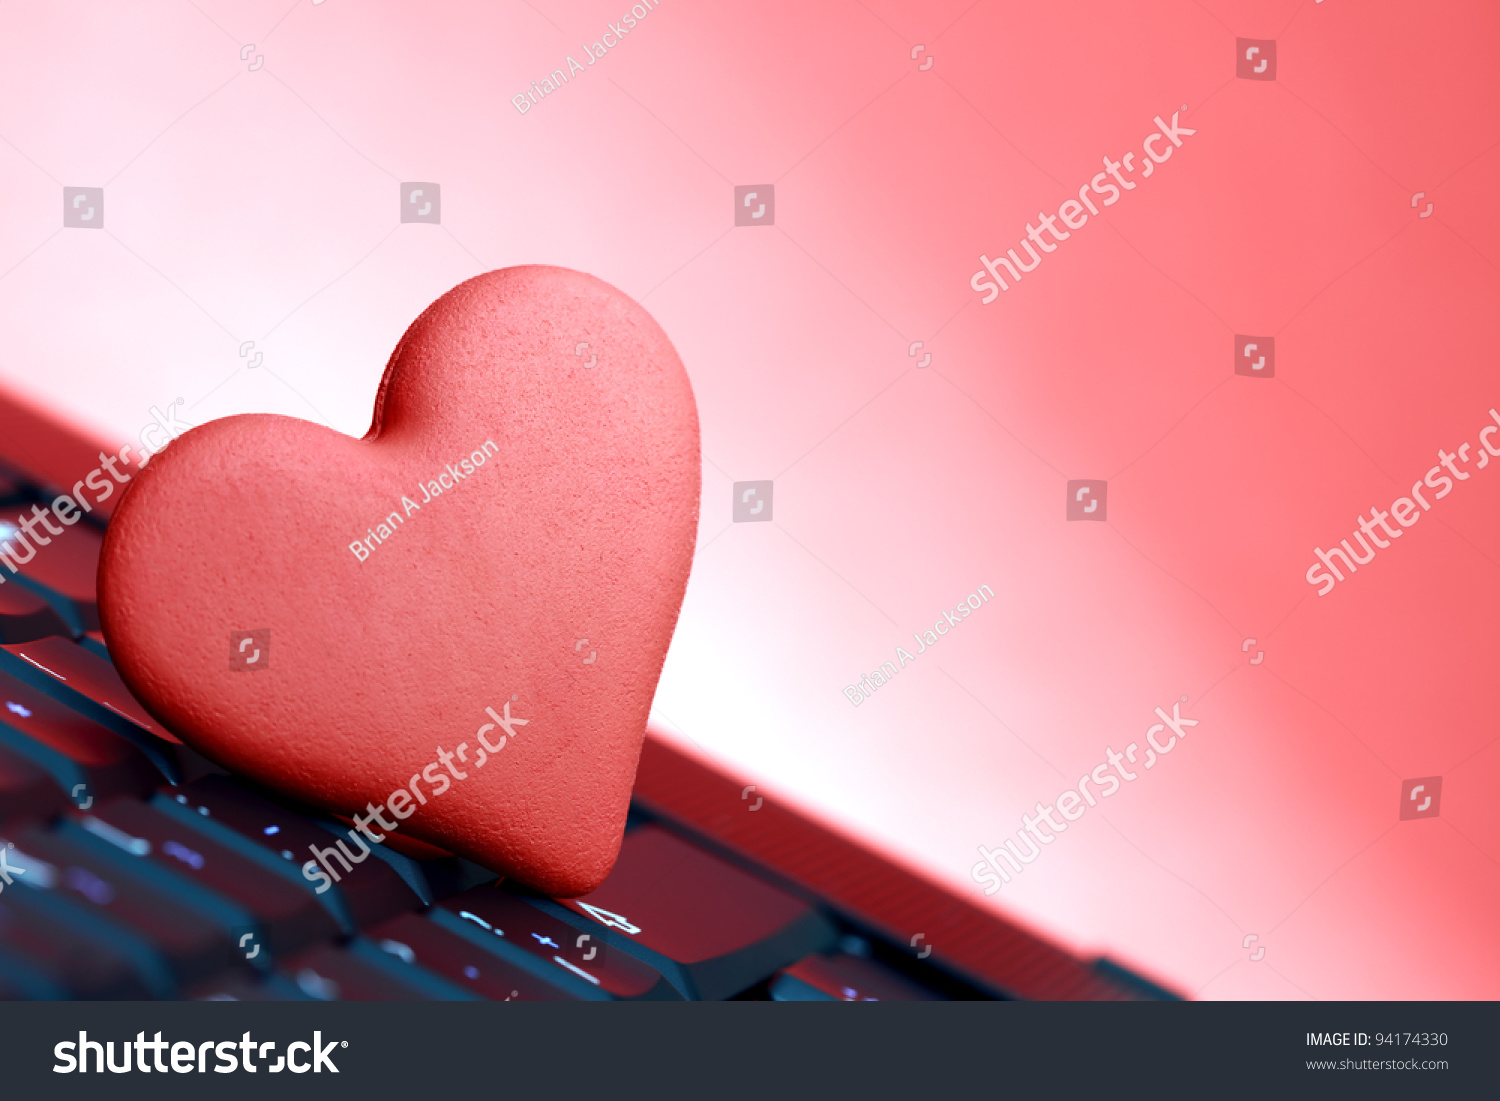 Love Online Dating Concept Heart Shape Stock Photo Edit Now